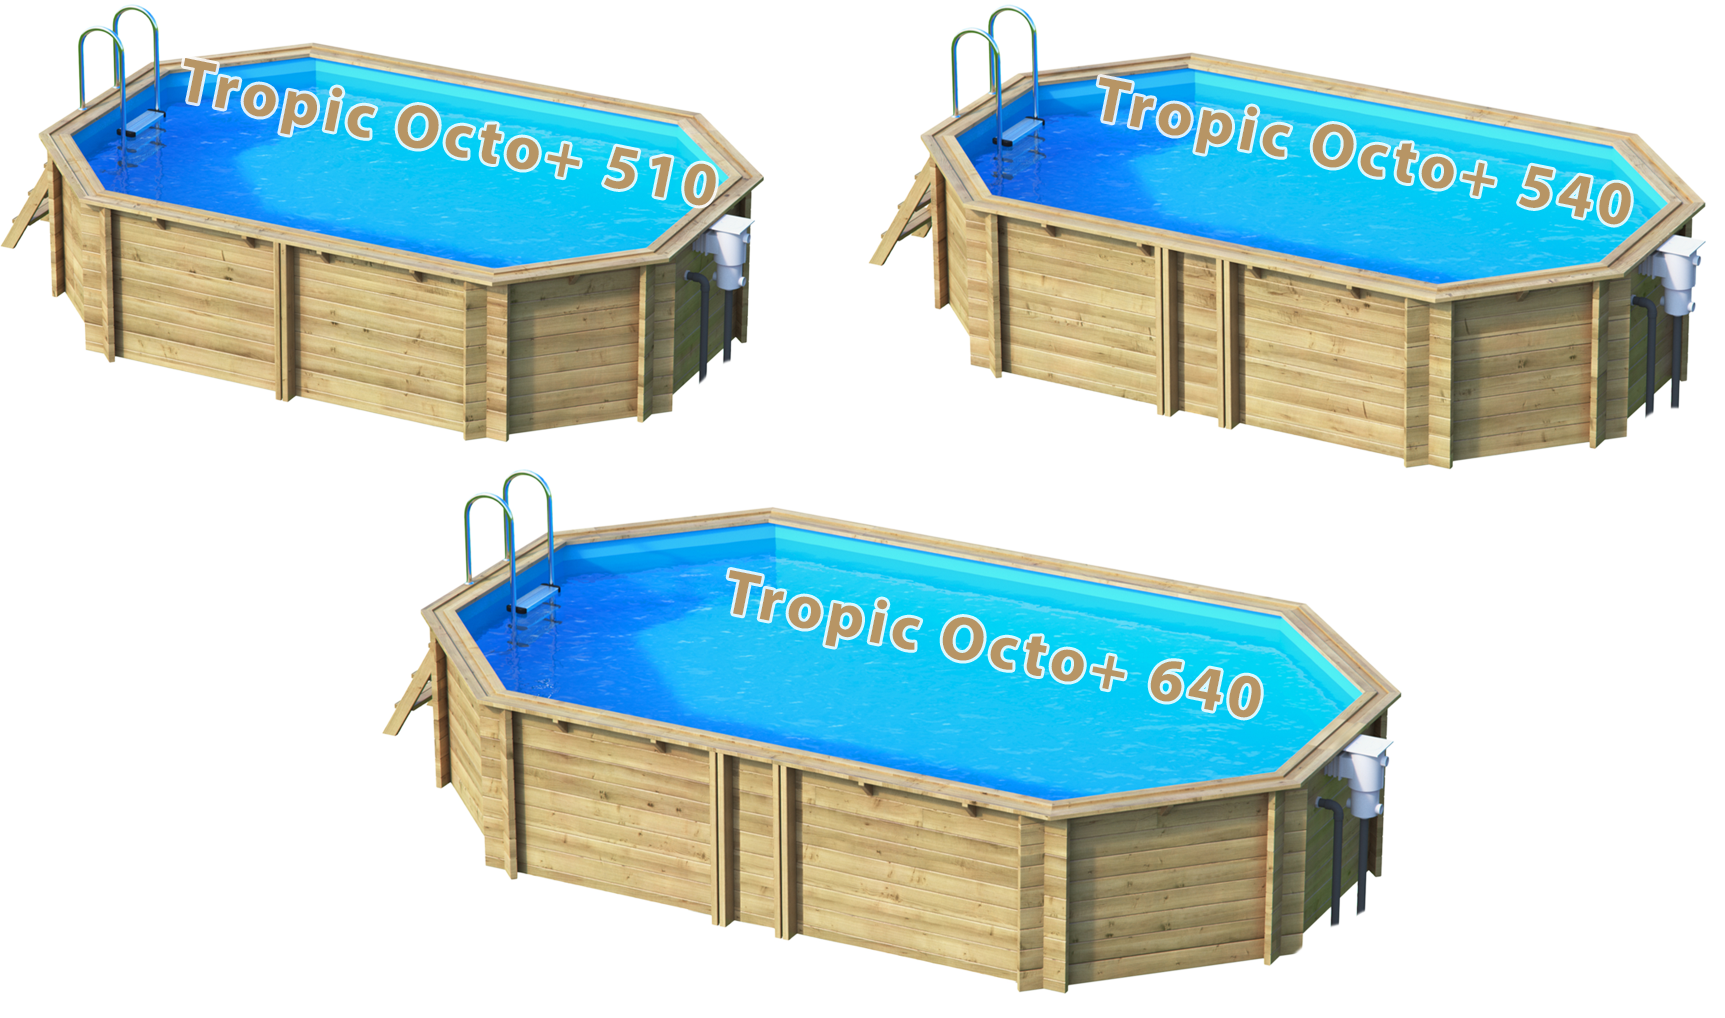 pool aus massivholz tropic octo sunday pools onlineshop. Black Bedroom Furniture Sets. Home Design Ideas